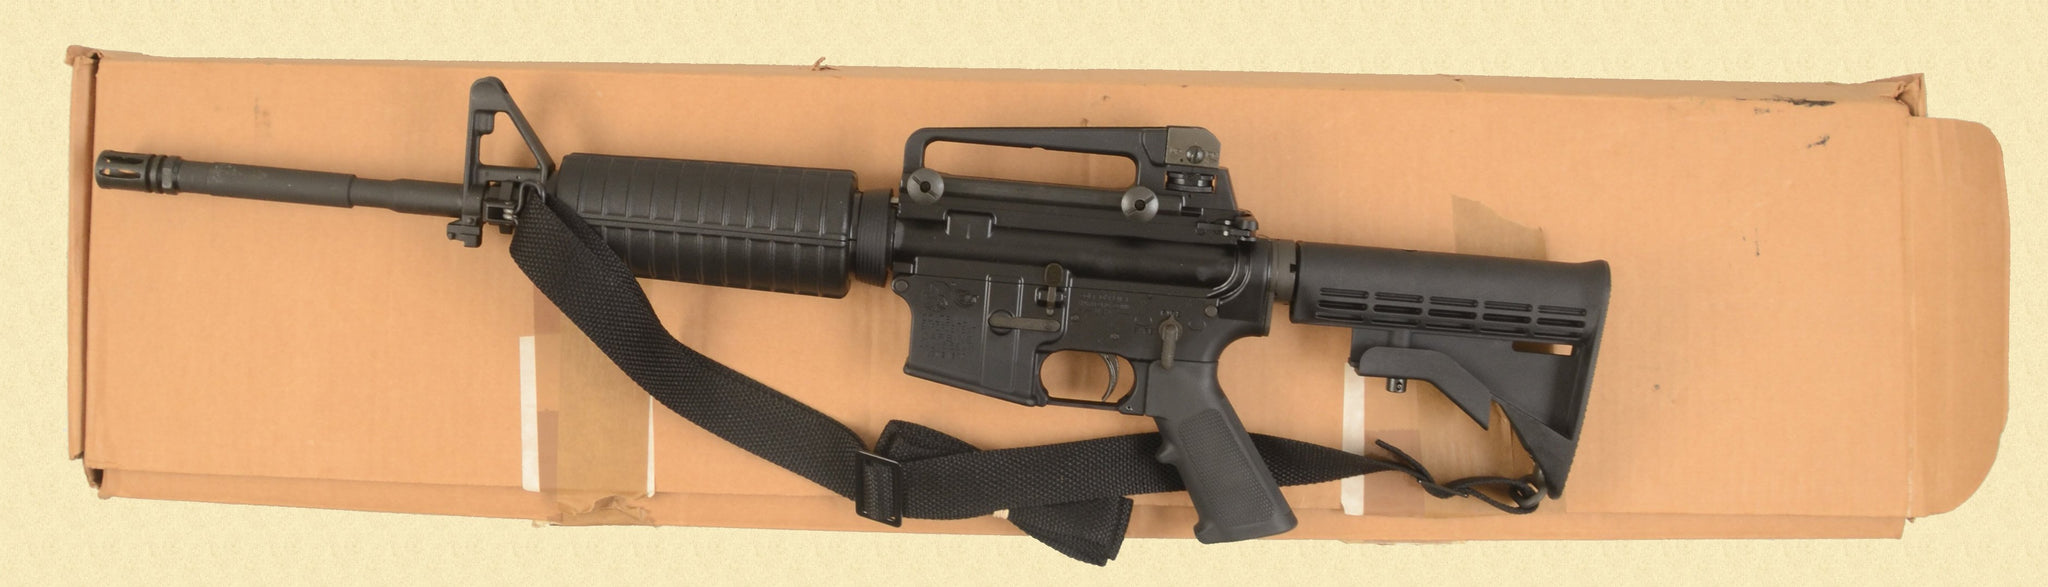 COLT AR 15 LAW ENFORCEMENT